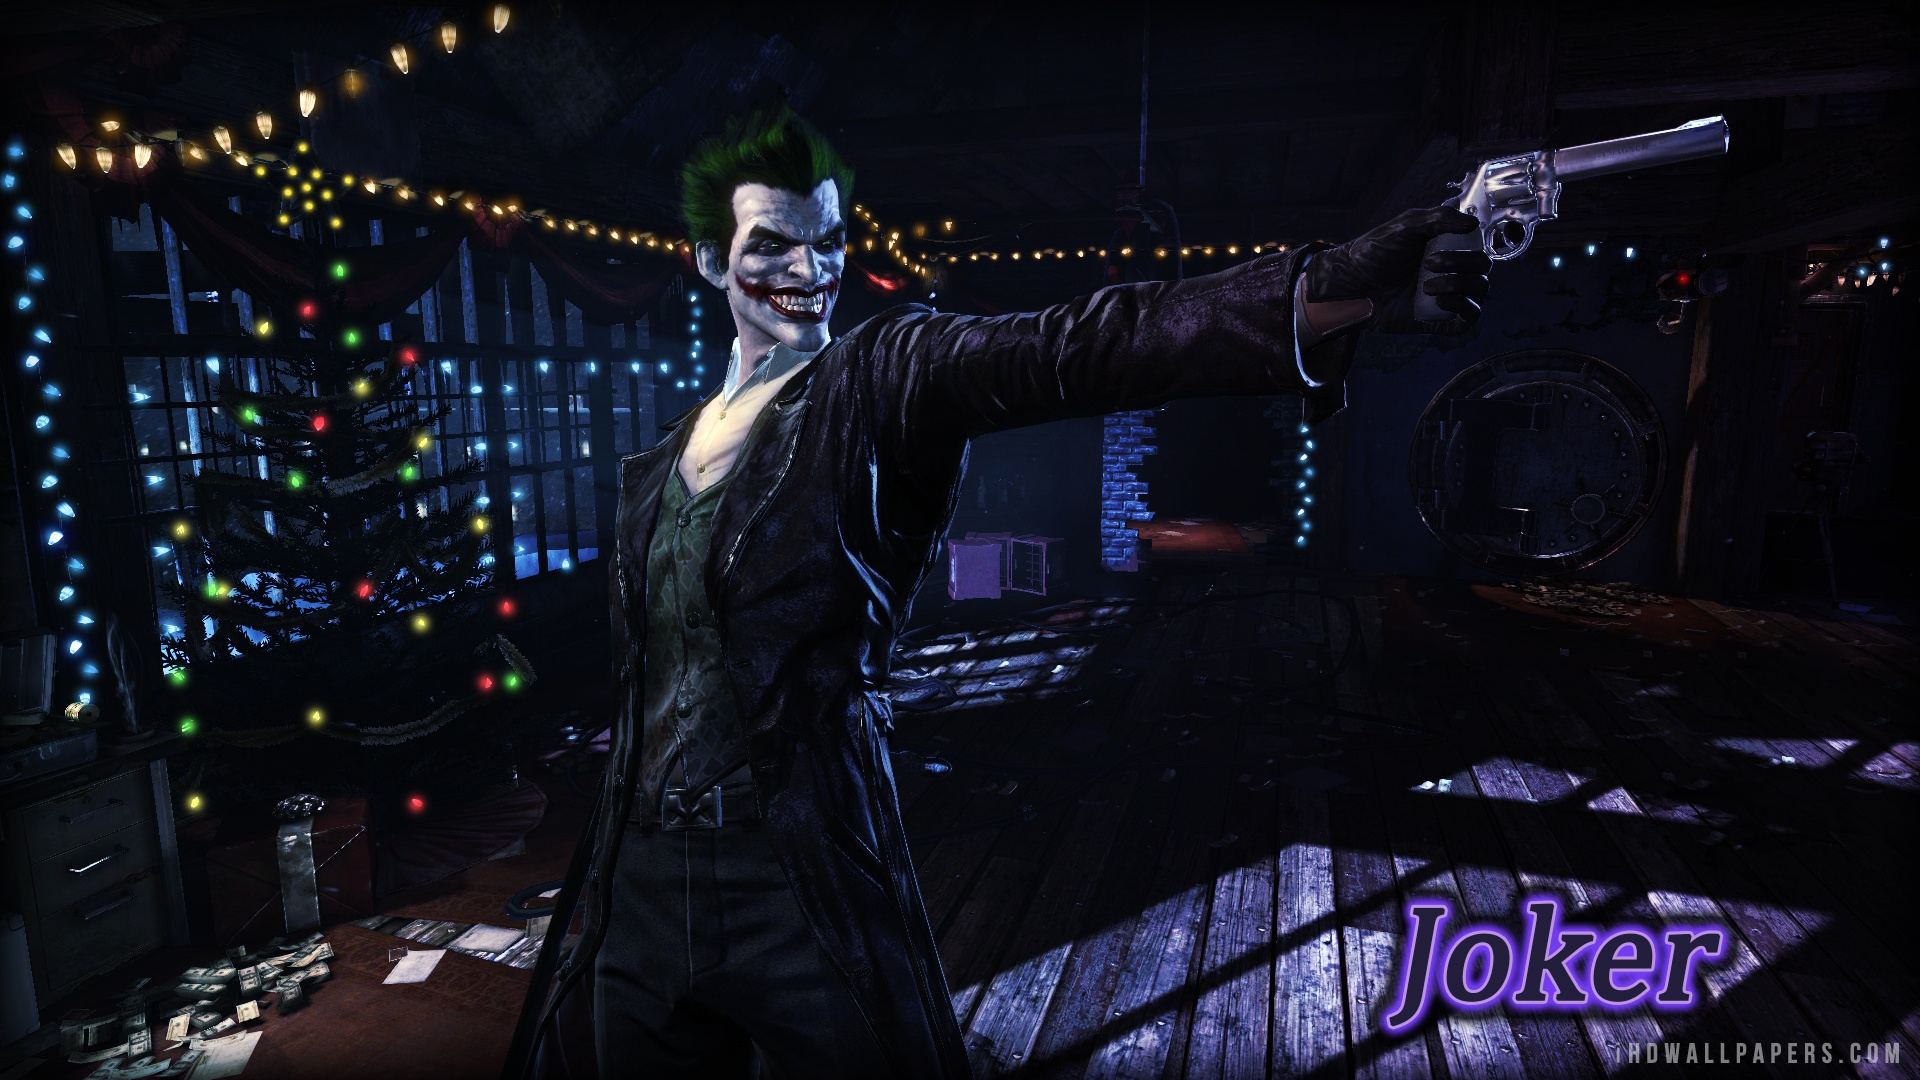 Batman Arkham Origins Joker HD Wallpaper   iHD Wallpapers 1920x1080